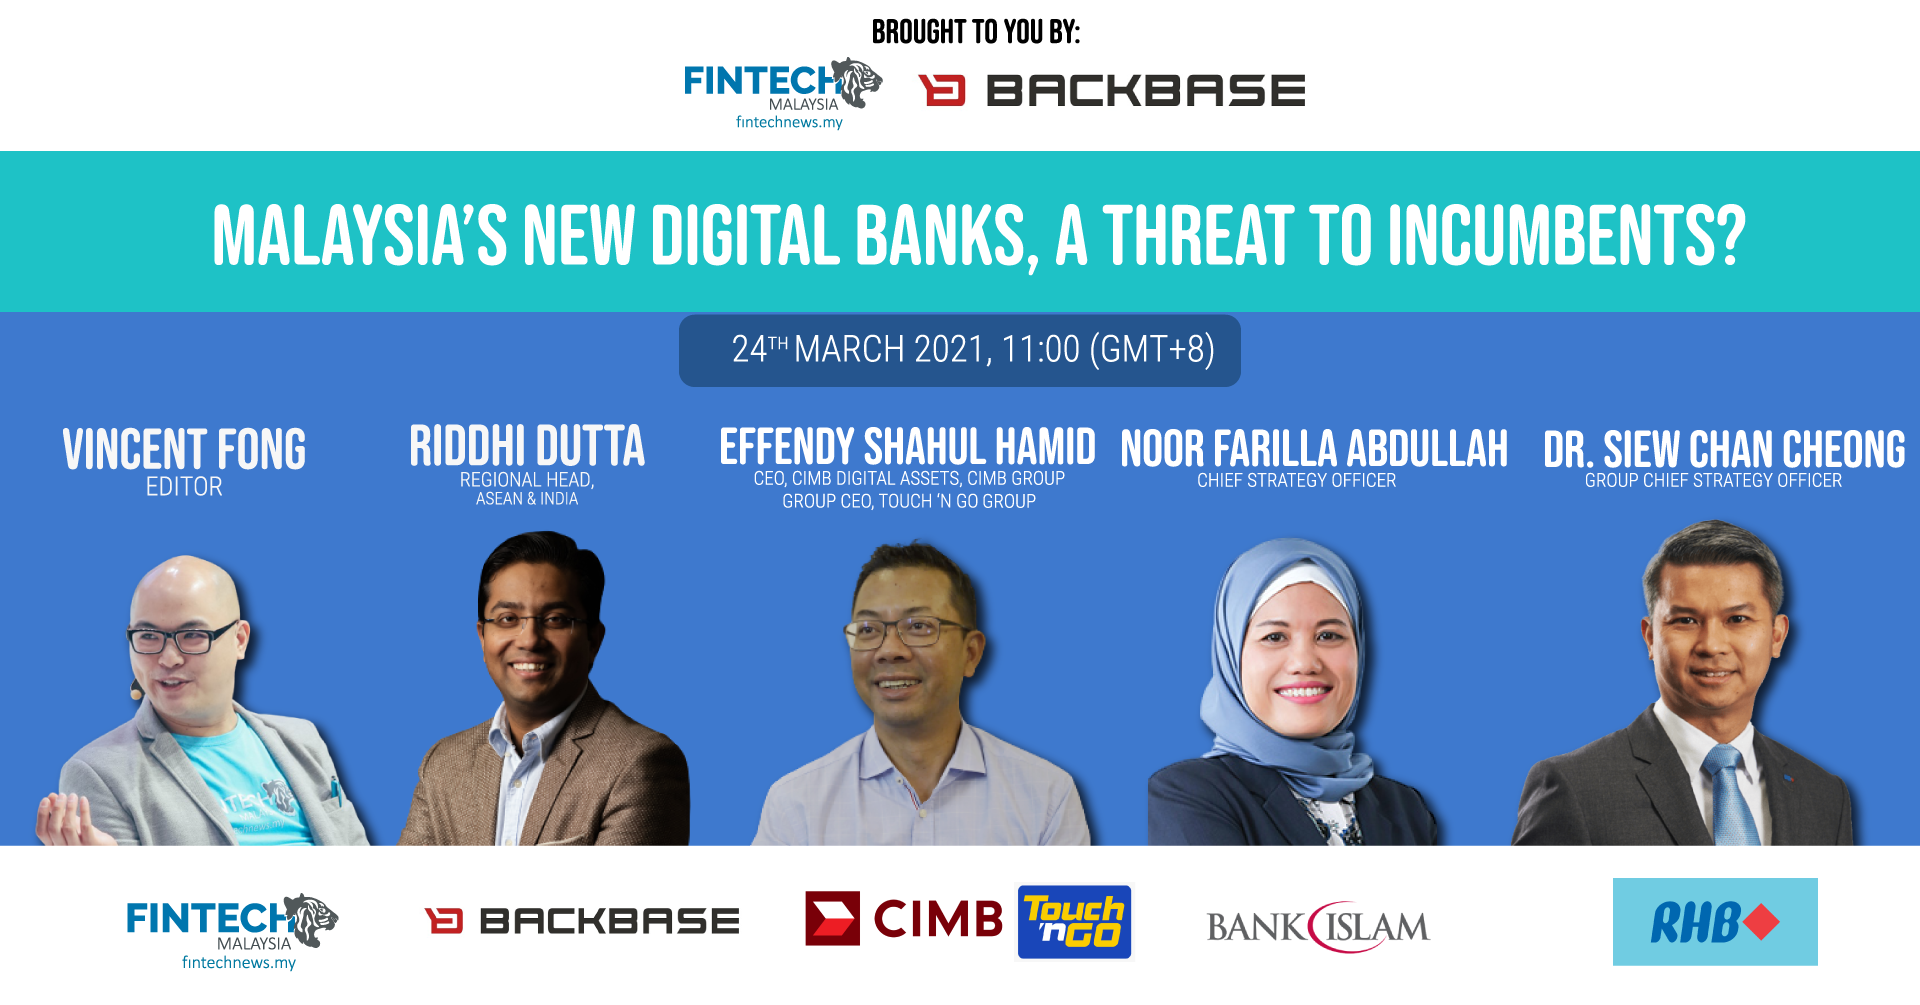 Malaysia's New Digital Banks, A Threat to Incumbents